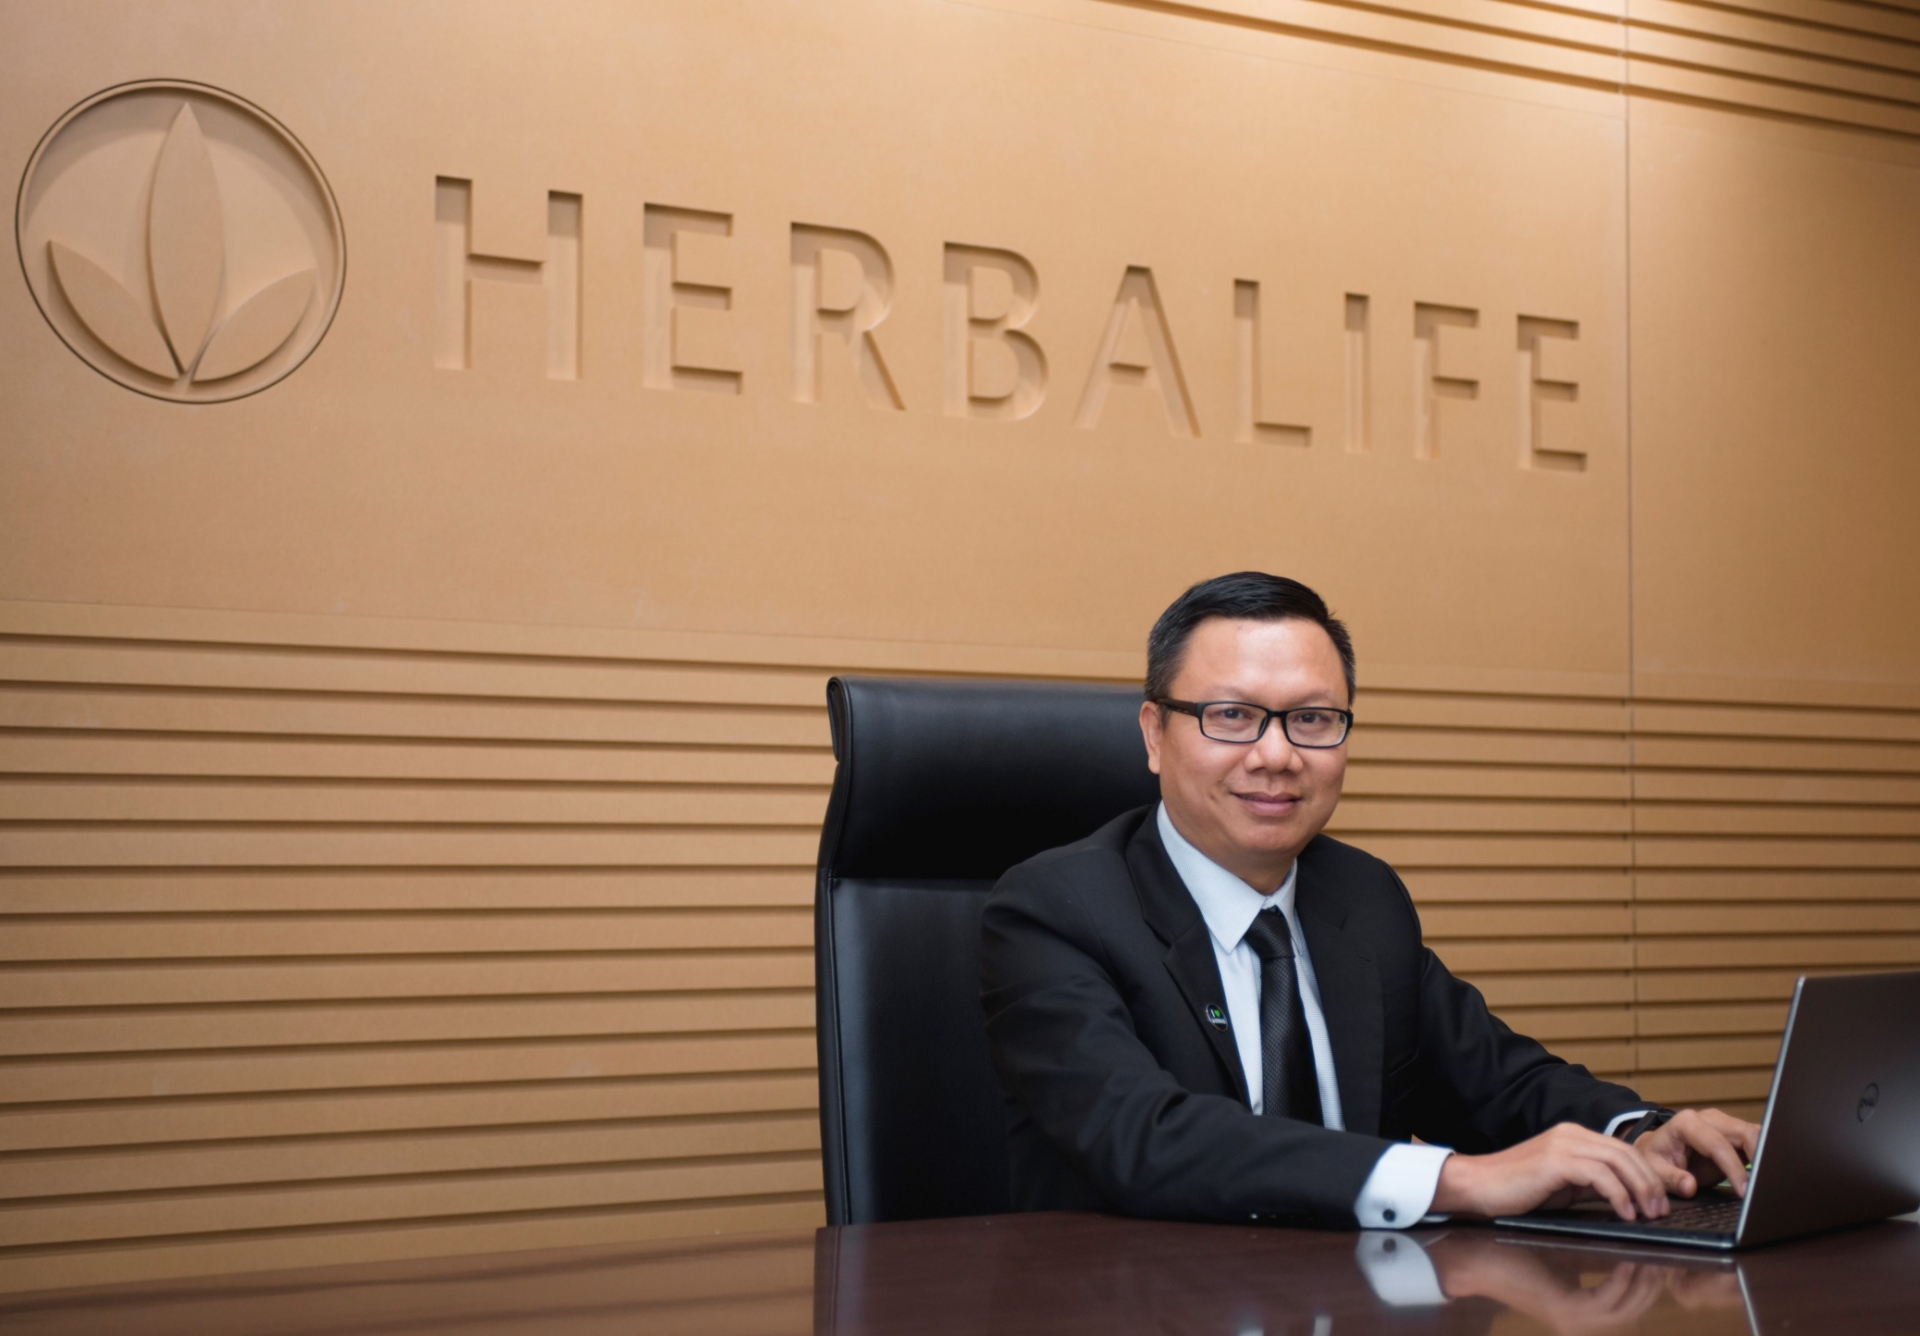 Herbalife appoints new senior director and general manager